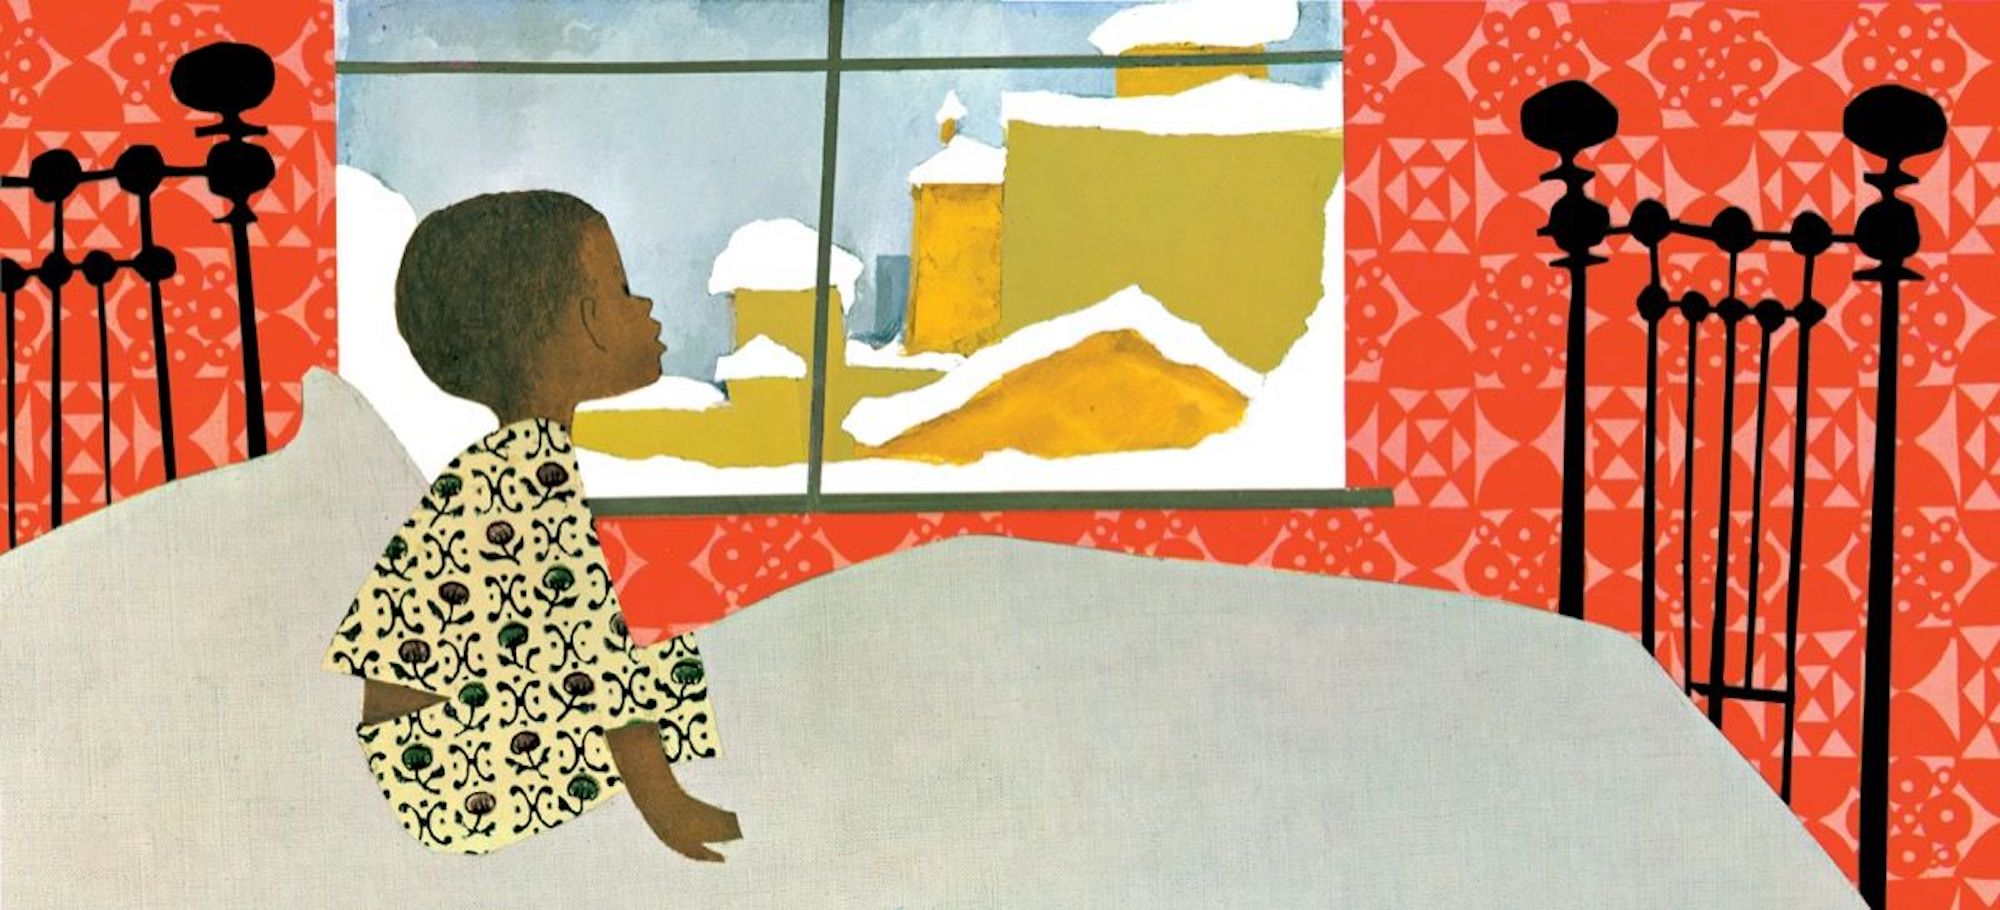 Ezra Jack Keats, A Snowy Day, KOLUMN Magazine, KOLUMN, KINDR'D Magazine, KINDR'D, Willoughby Avenue, Wriit,